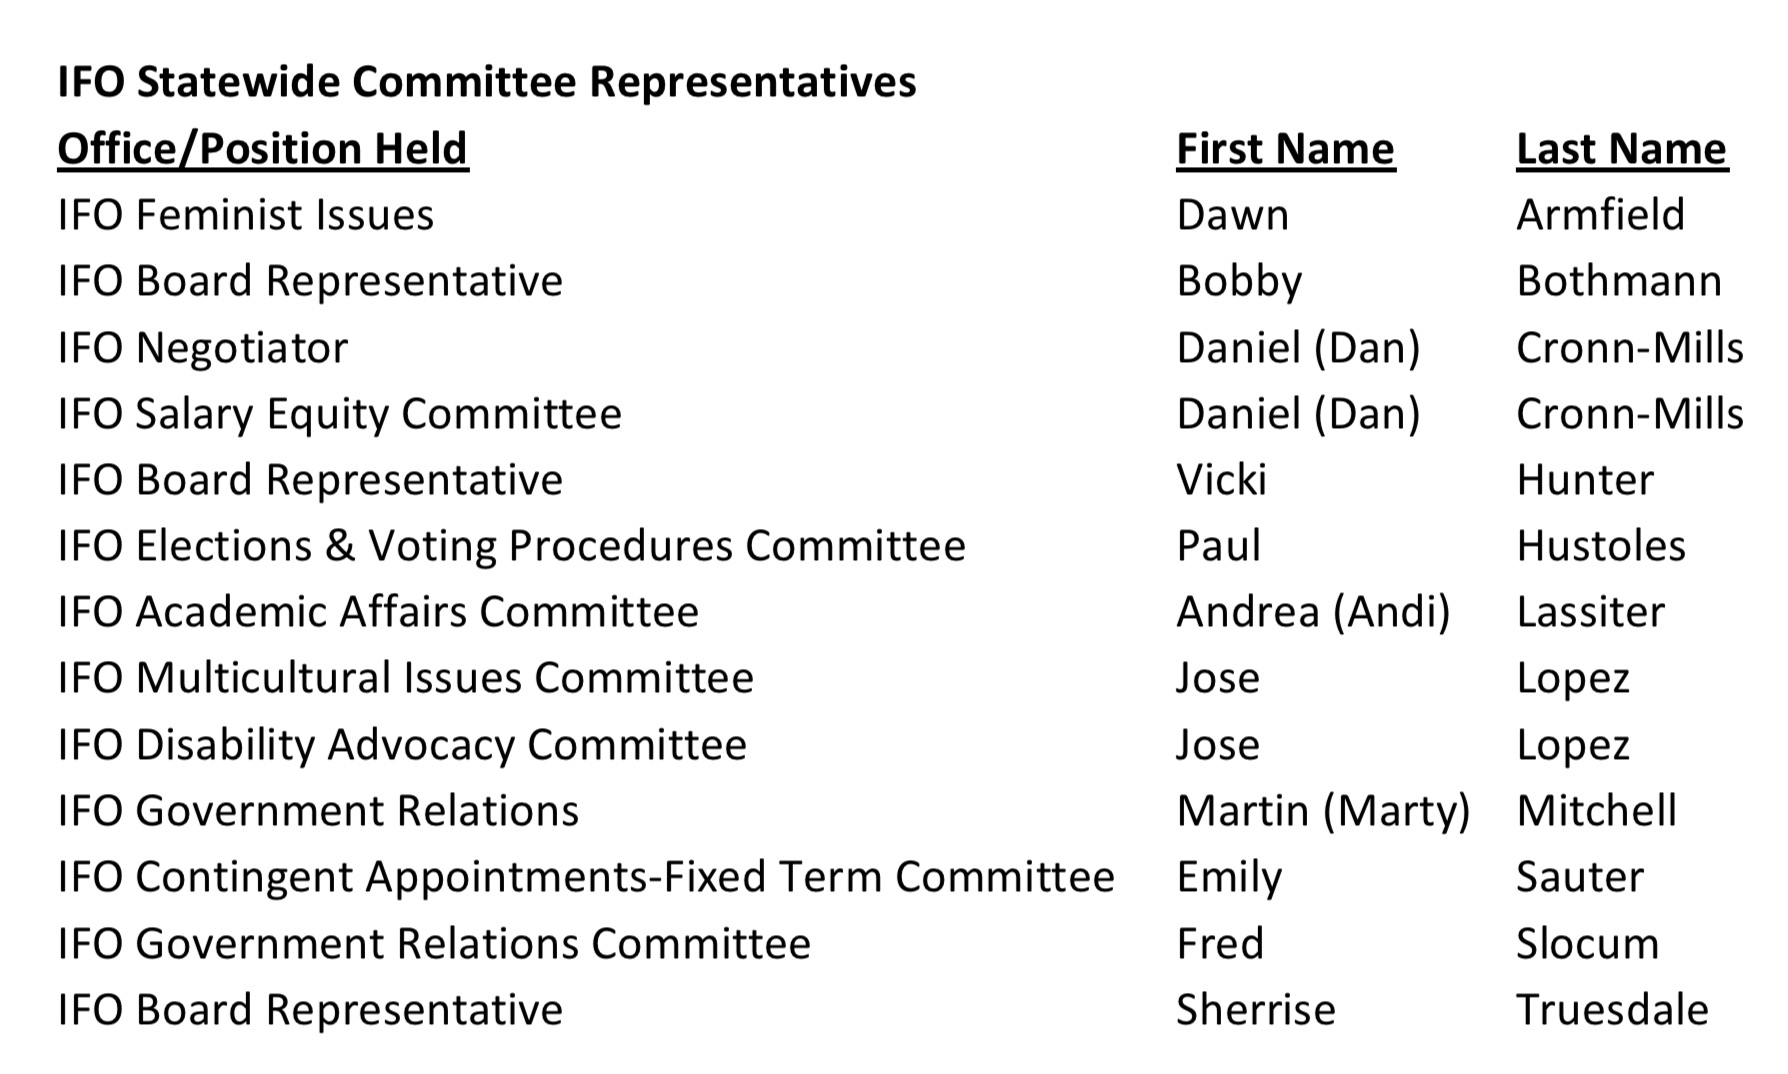 IFO Statewide Committees list '18.jpg